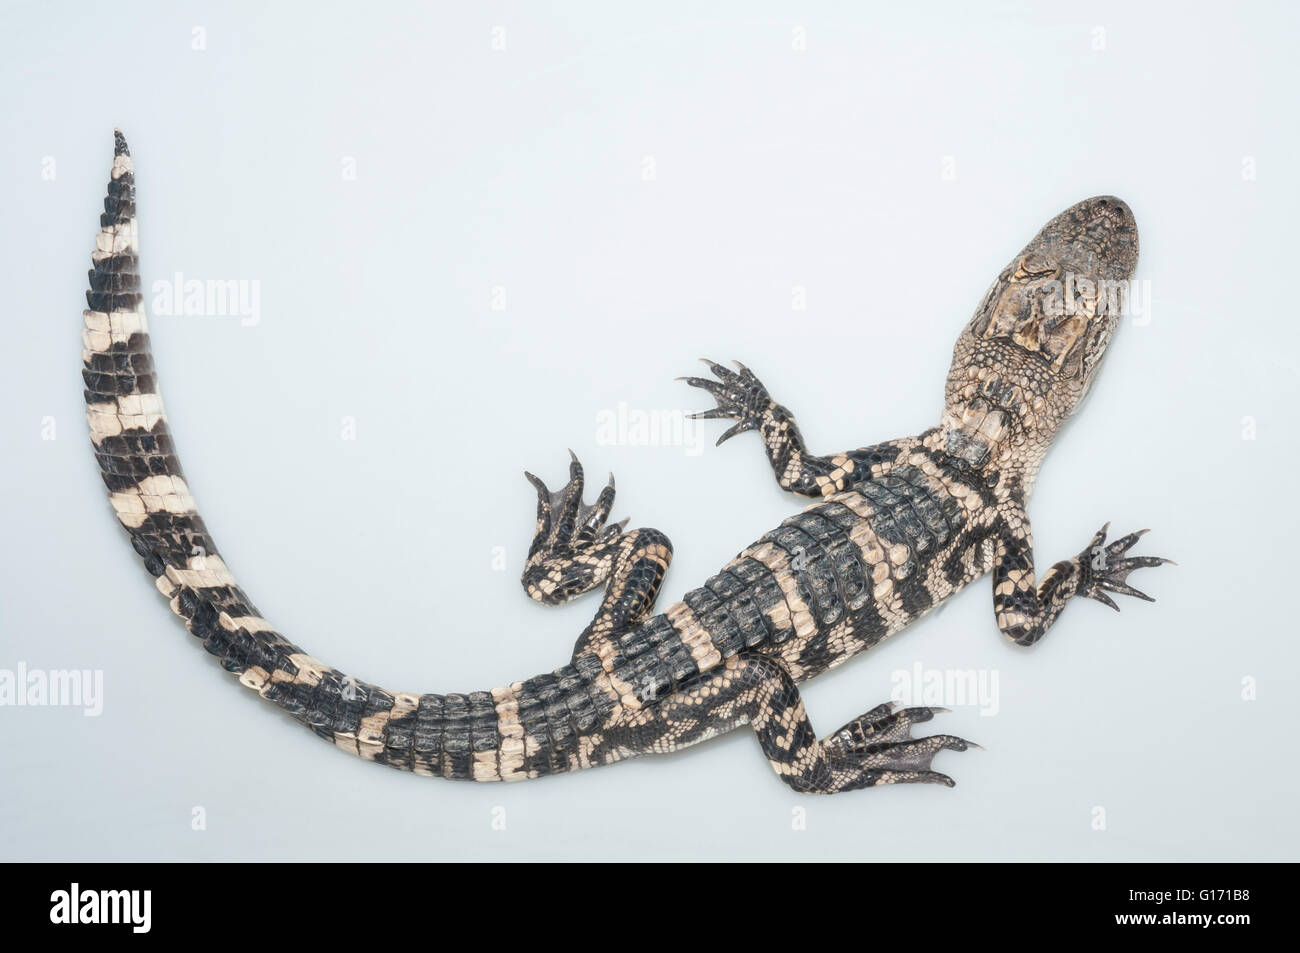 American alligator, Alligator mississippiensis, two years old; cutout with white background Stock Photo